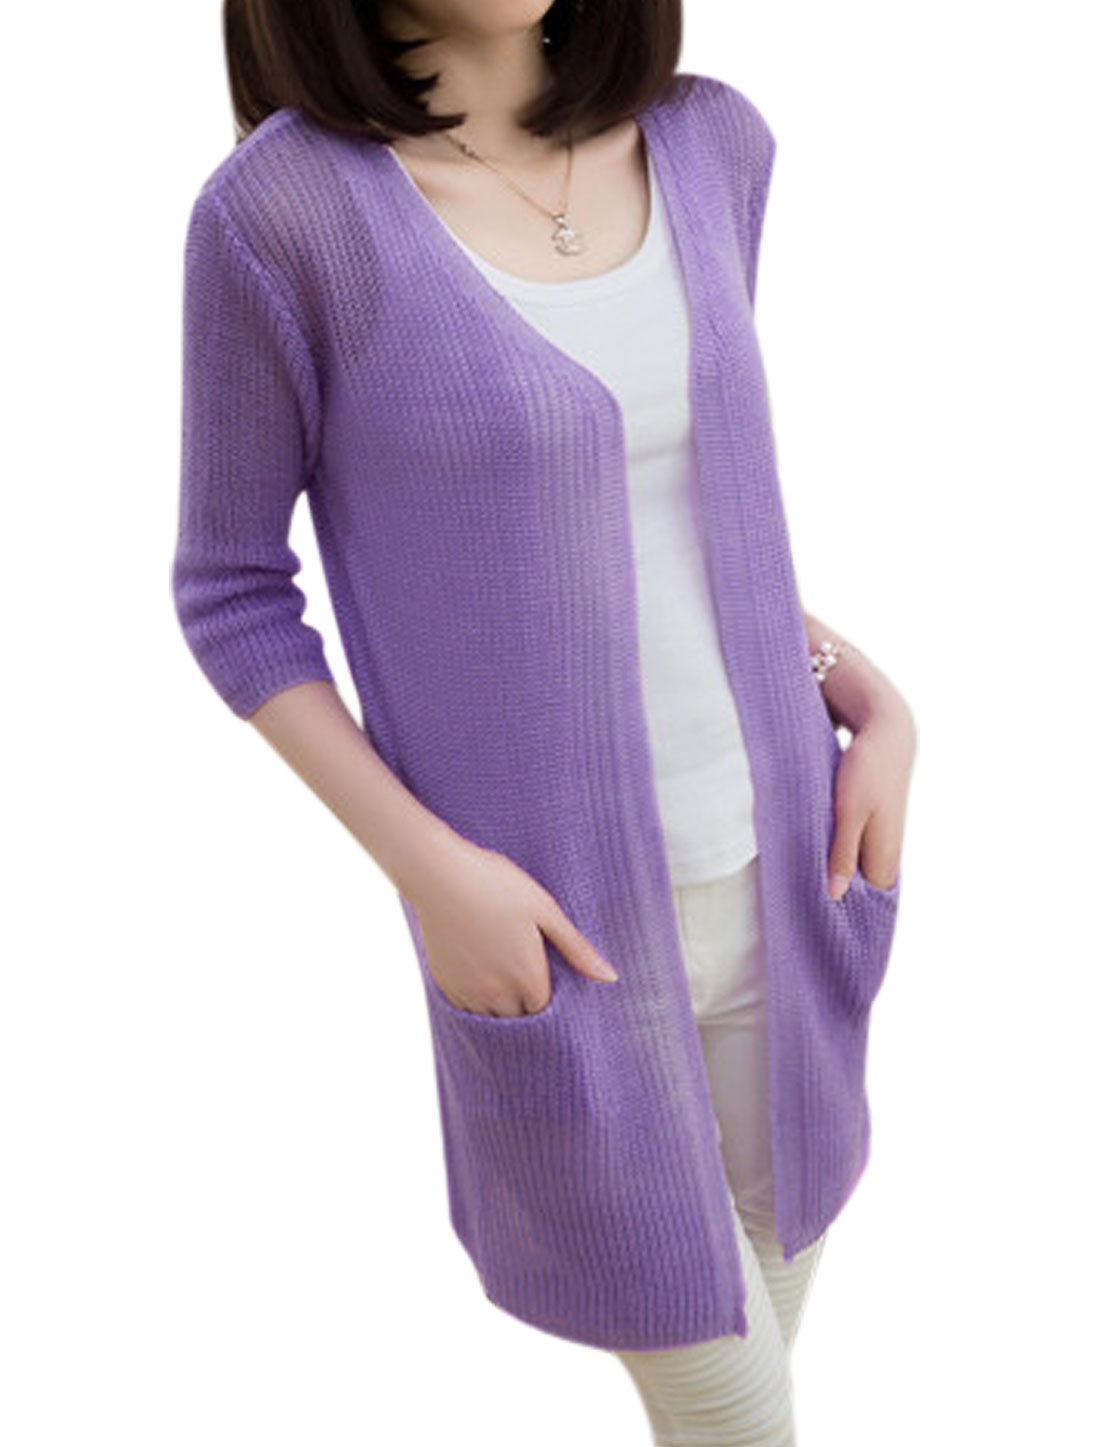 Lady 1/2 Sleeves Thin V Neckline Violet Tunic Knit Cardigan XS